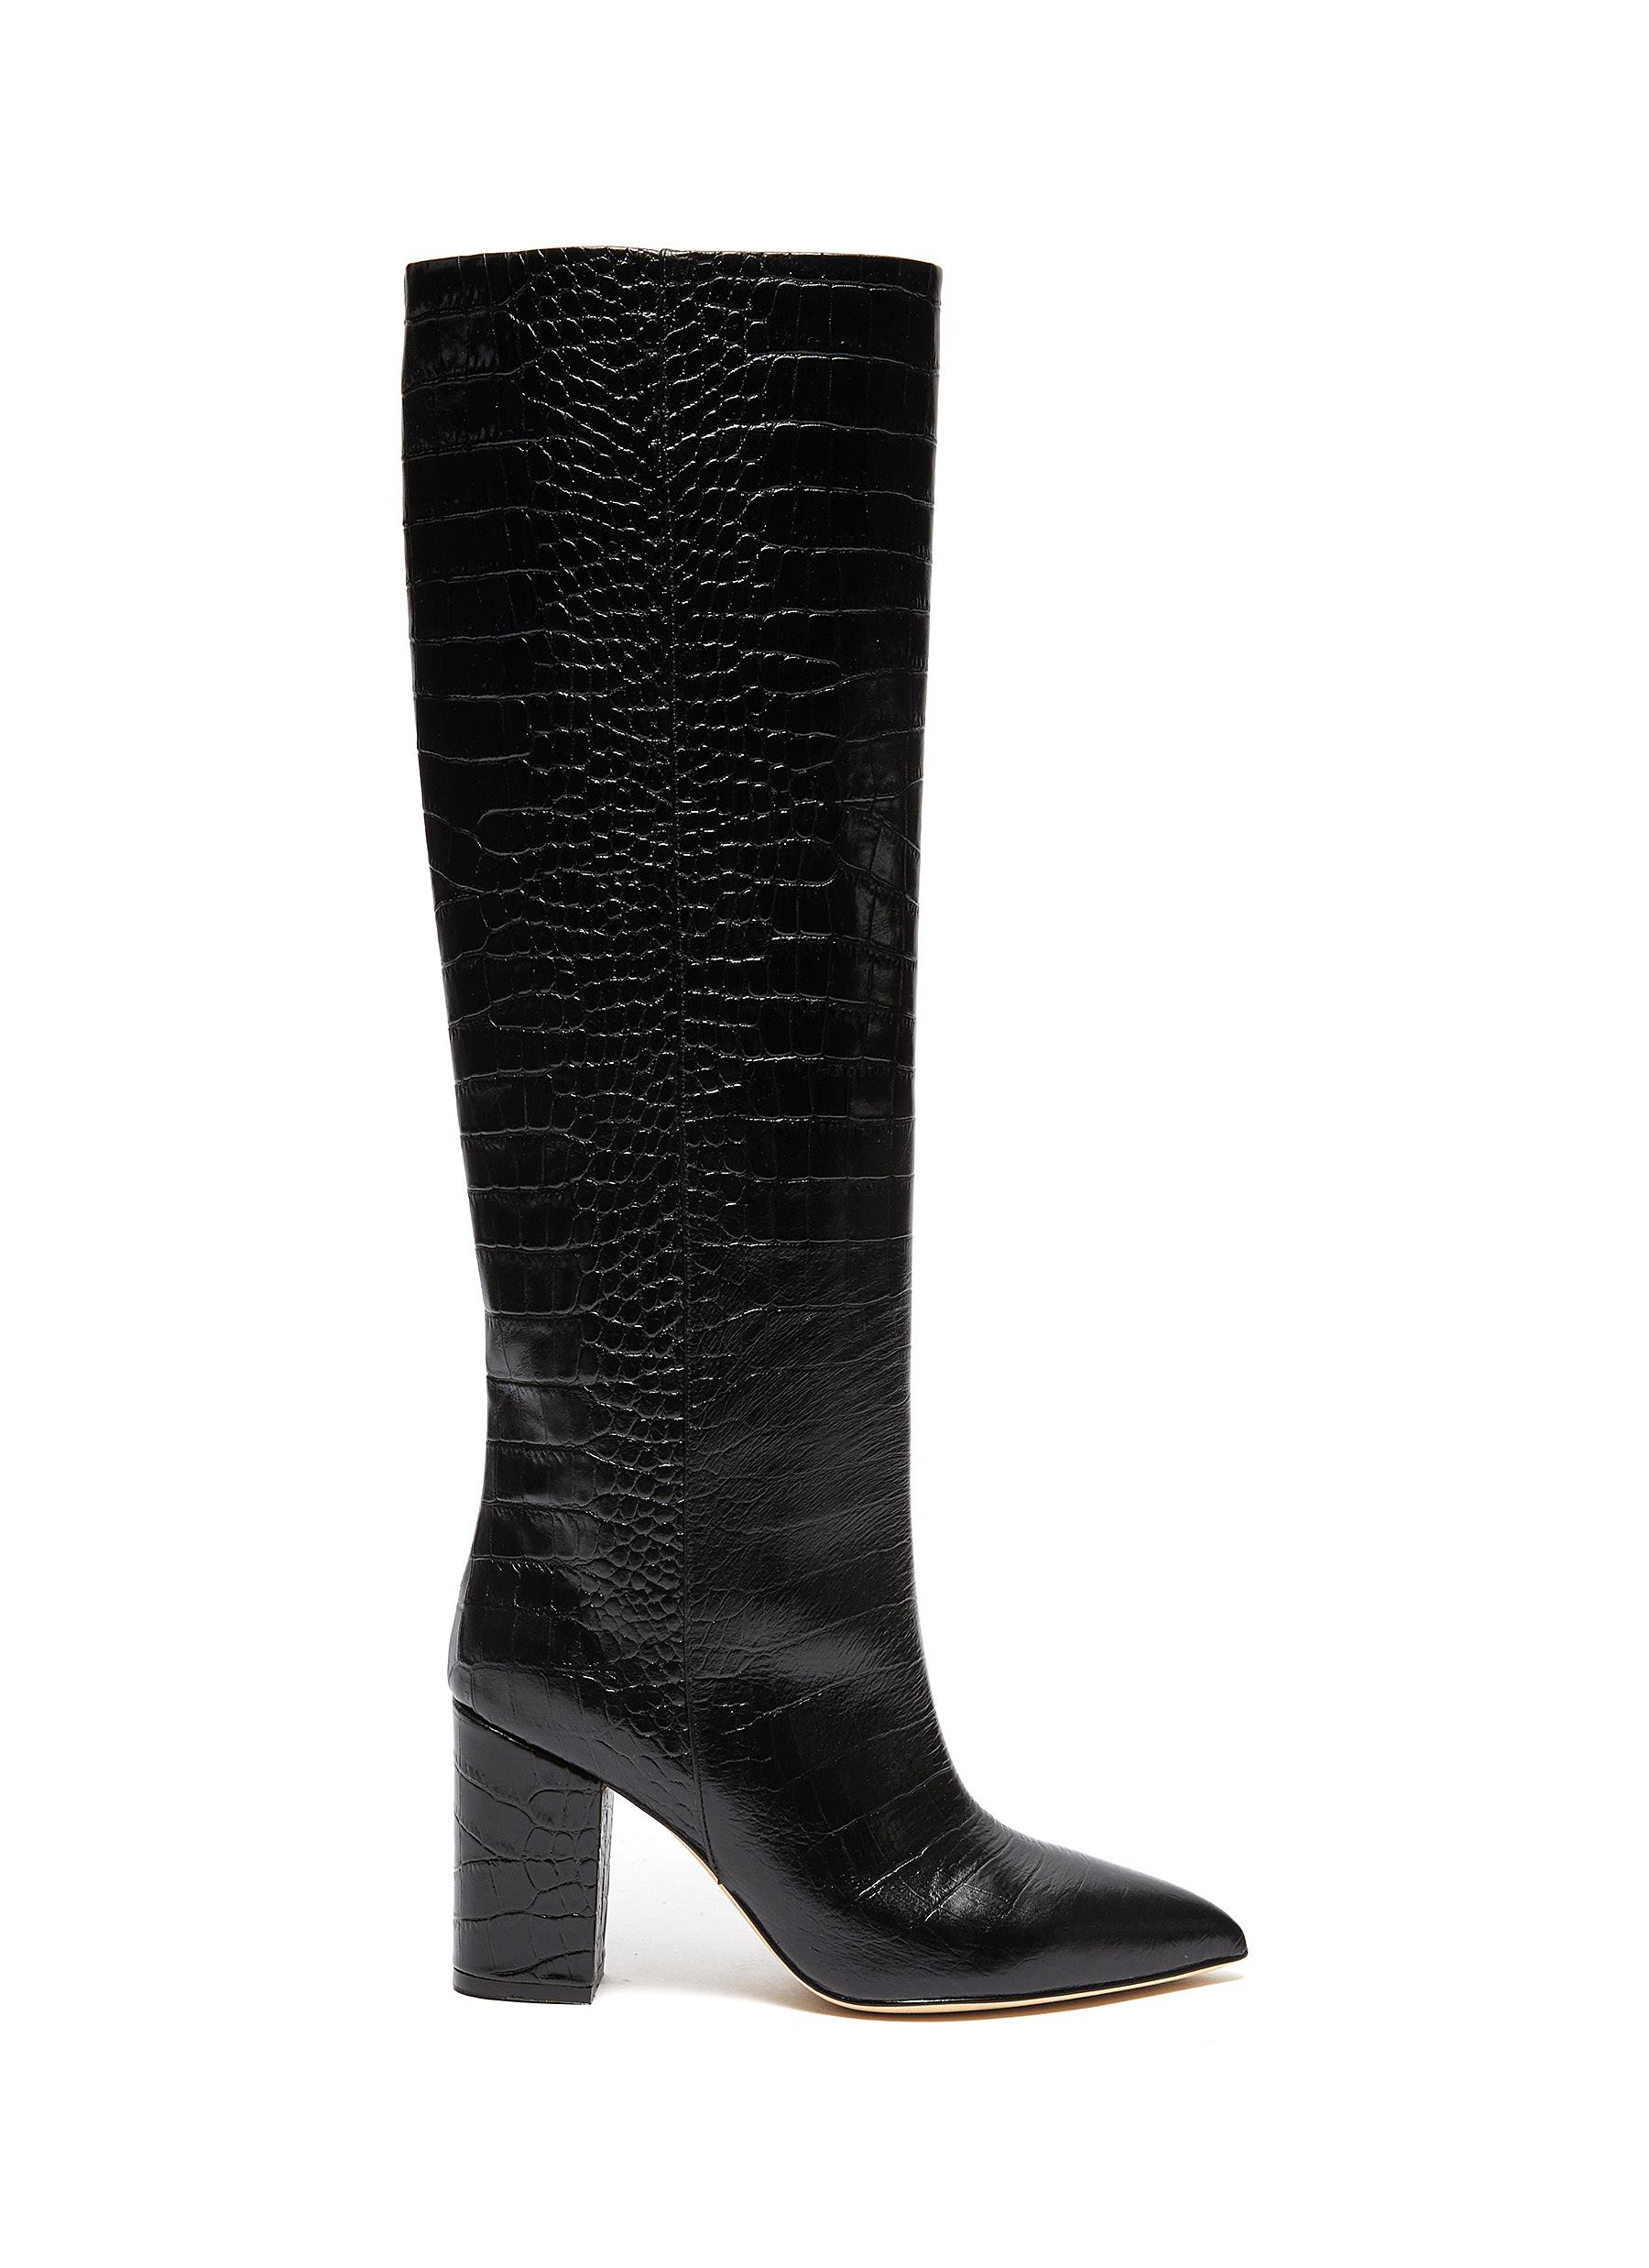 Paris Texas Boots CROC EMBOSSED LEATHER KNEE HIGH BOOTS